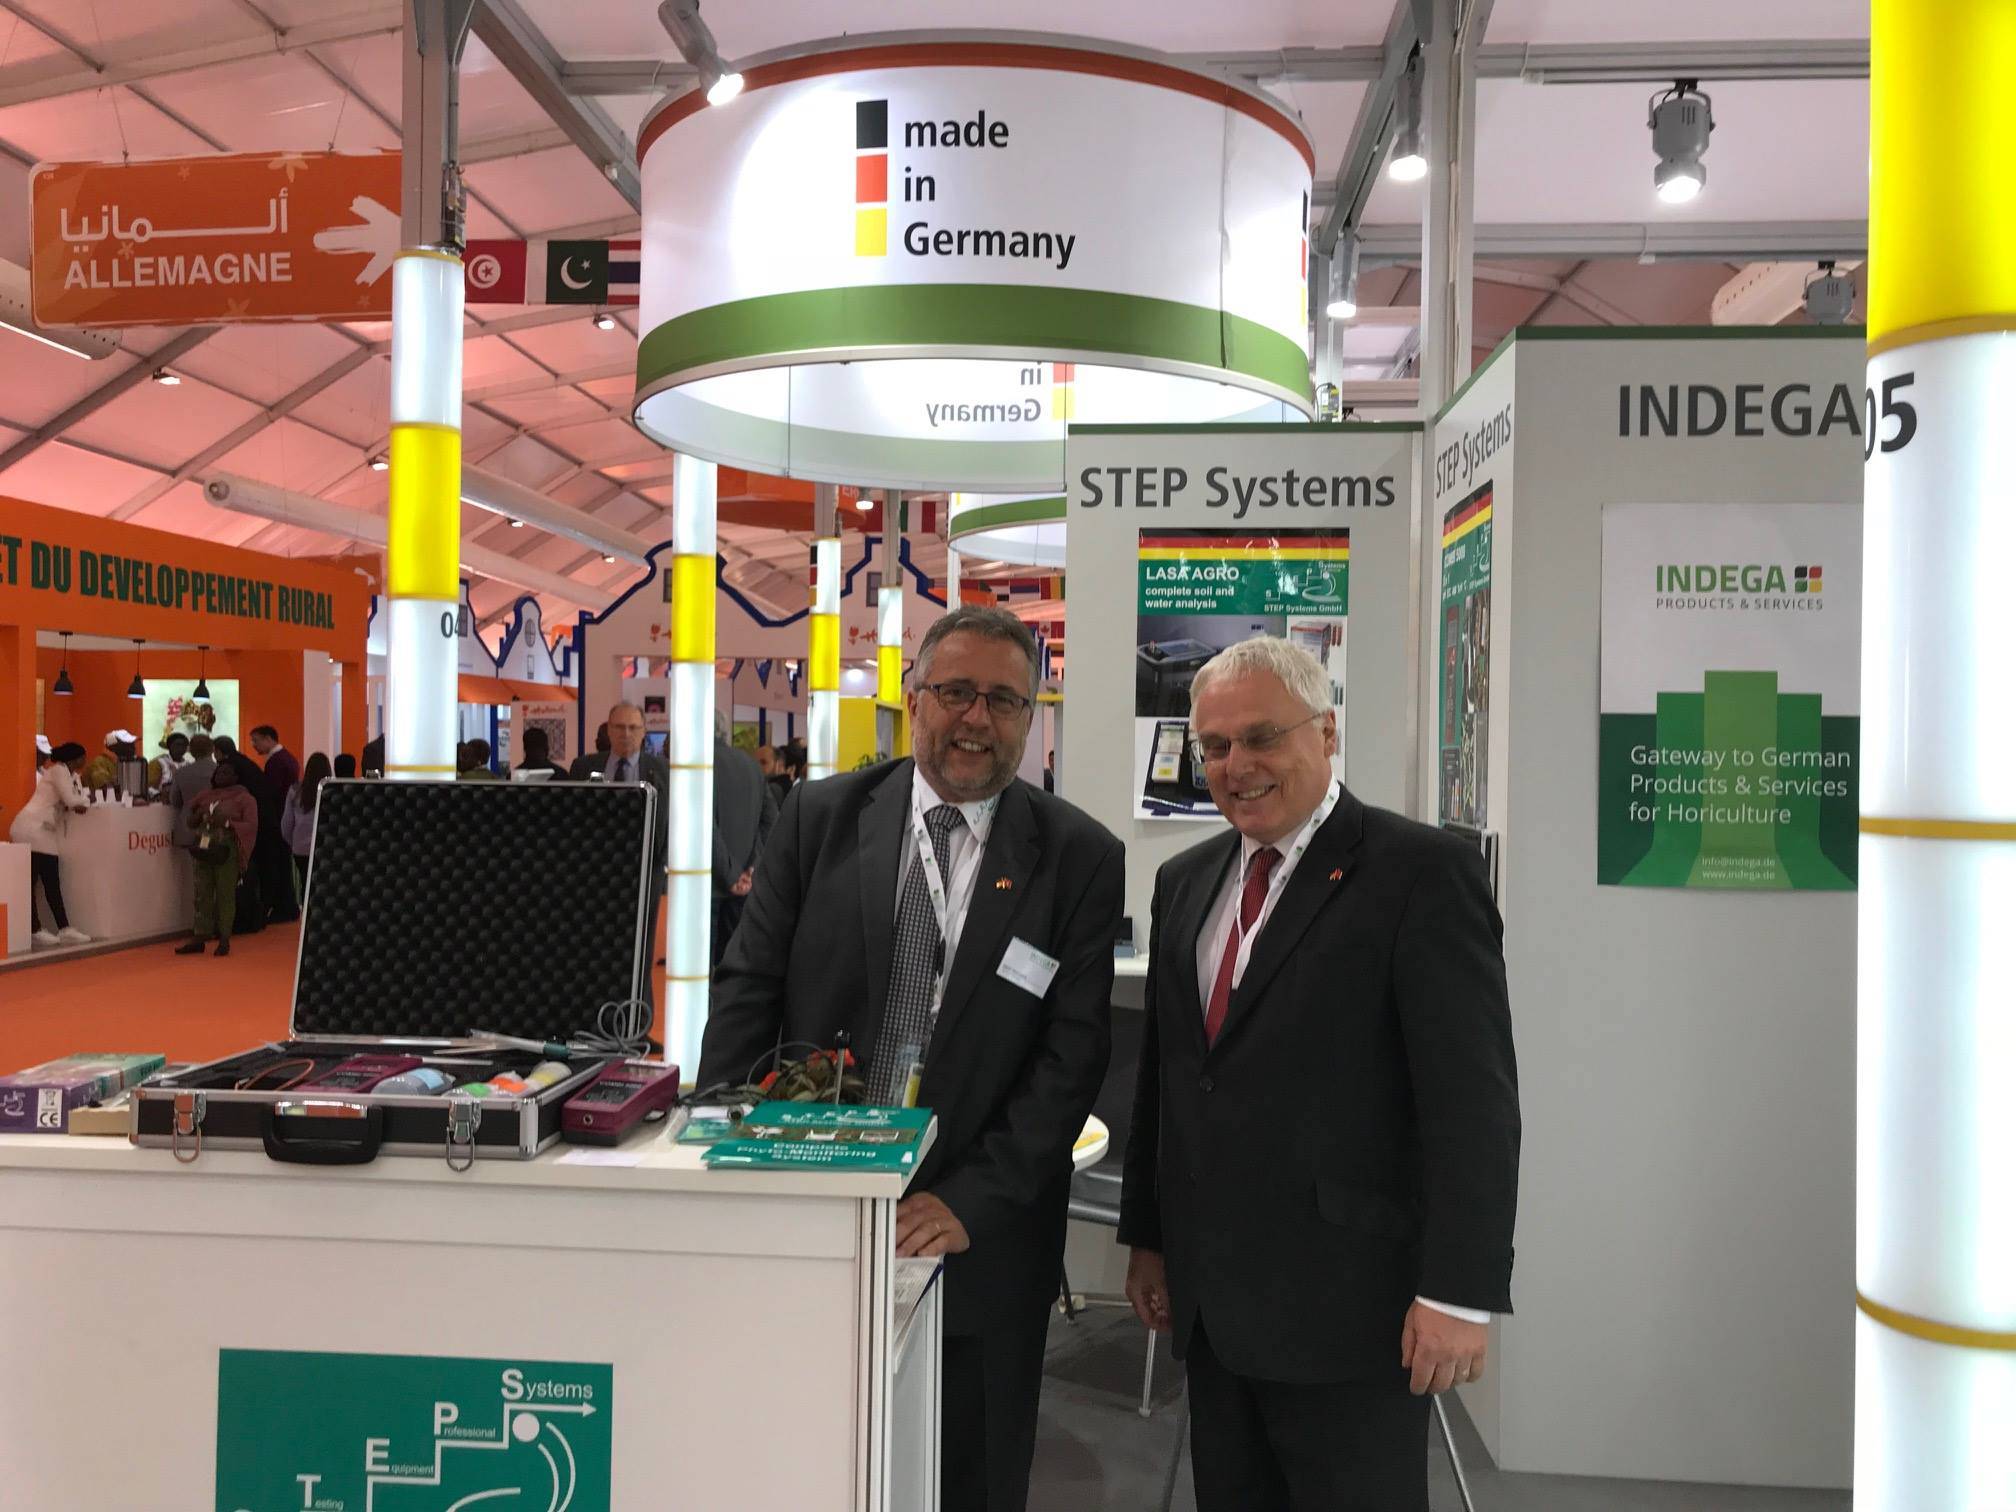 Expert discussion at the German booth between Harald Braungardt, CEO of STEP Systems and Dr. Ing. German Jeub, Ministerial Director in the Federal Ministry of Food and Agriculture